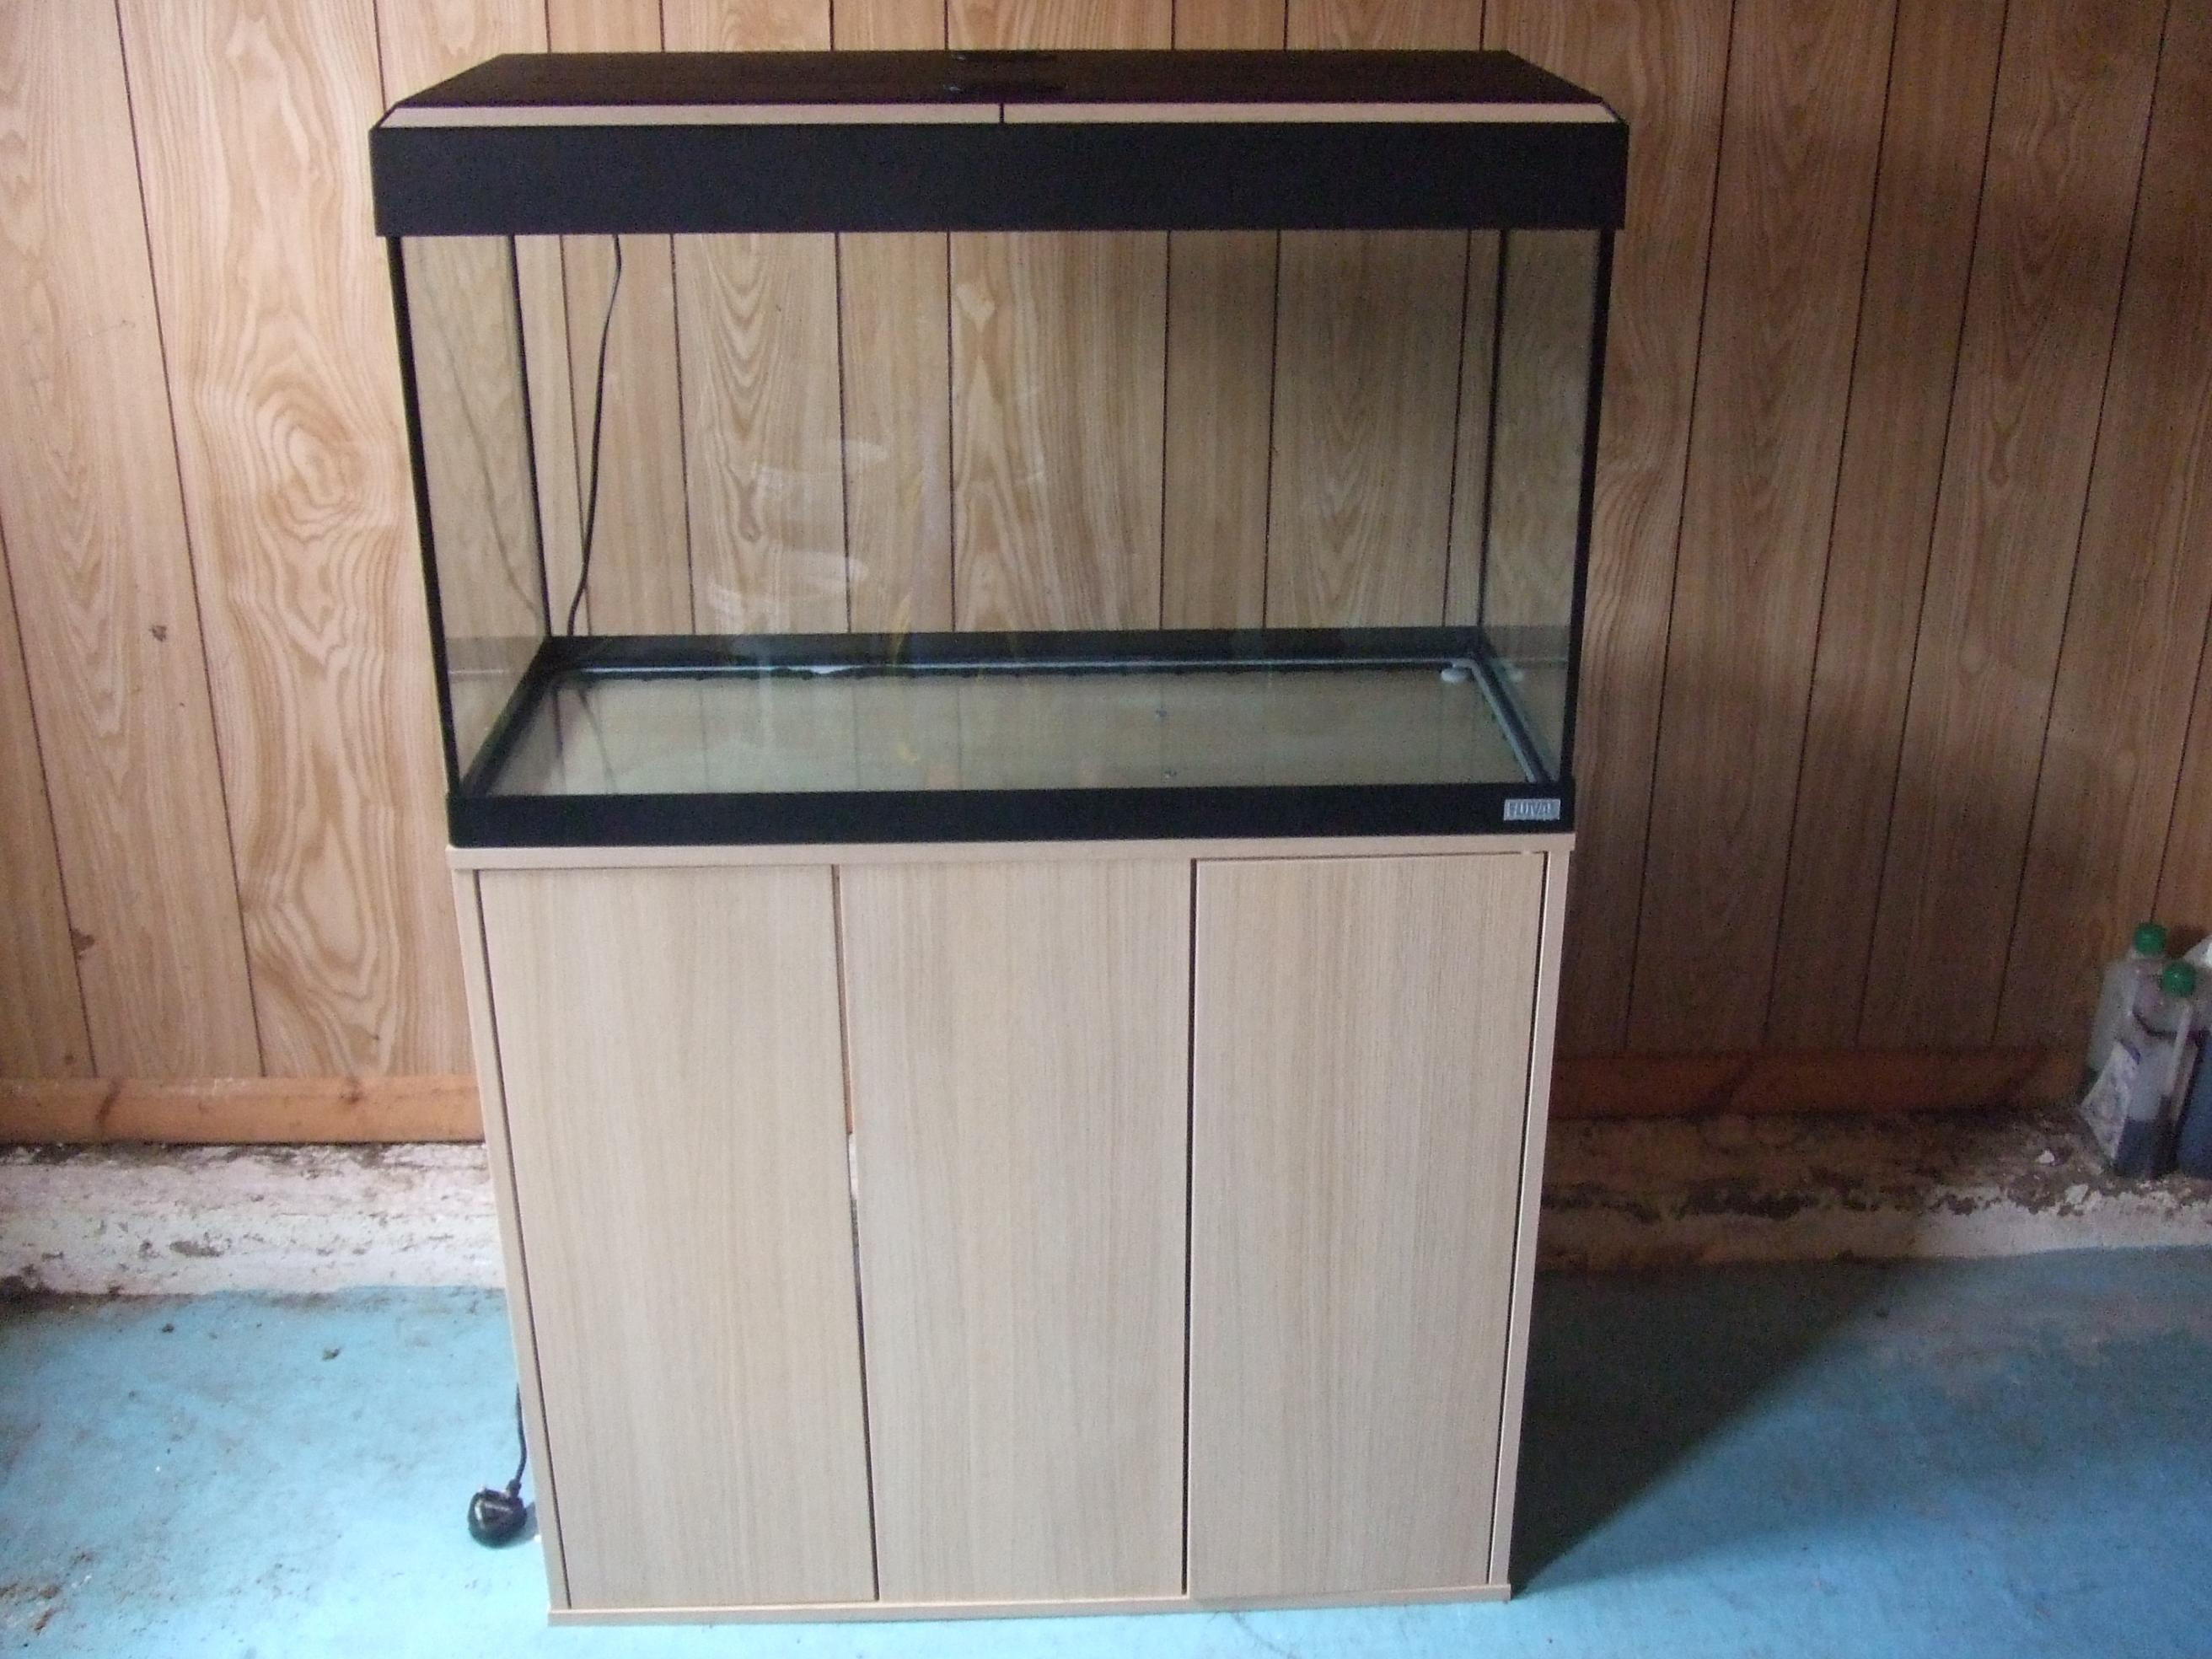 W Midlands Fluval ROMA 125 FISH TANK AND CABINET Reptile Forums